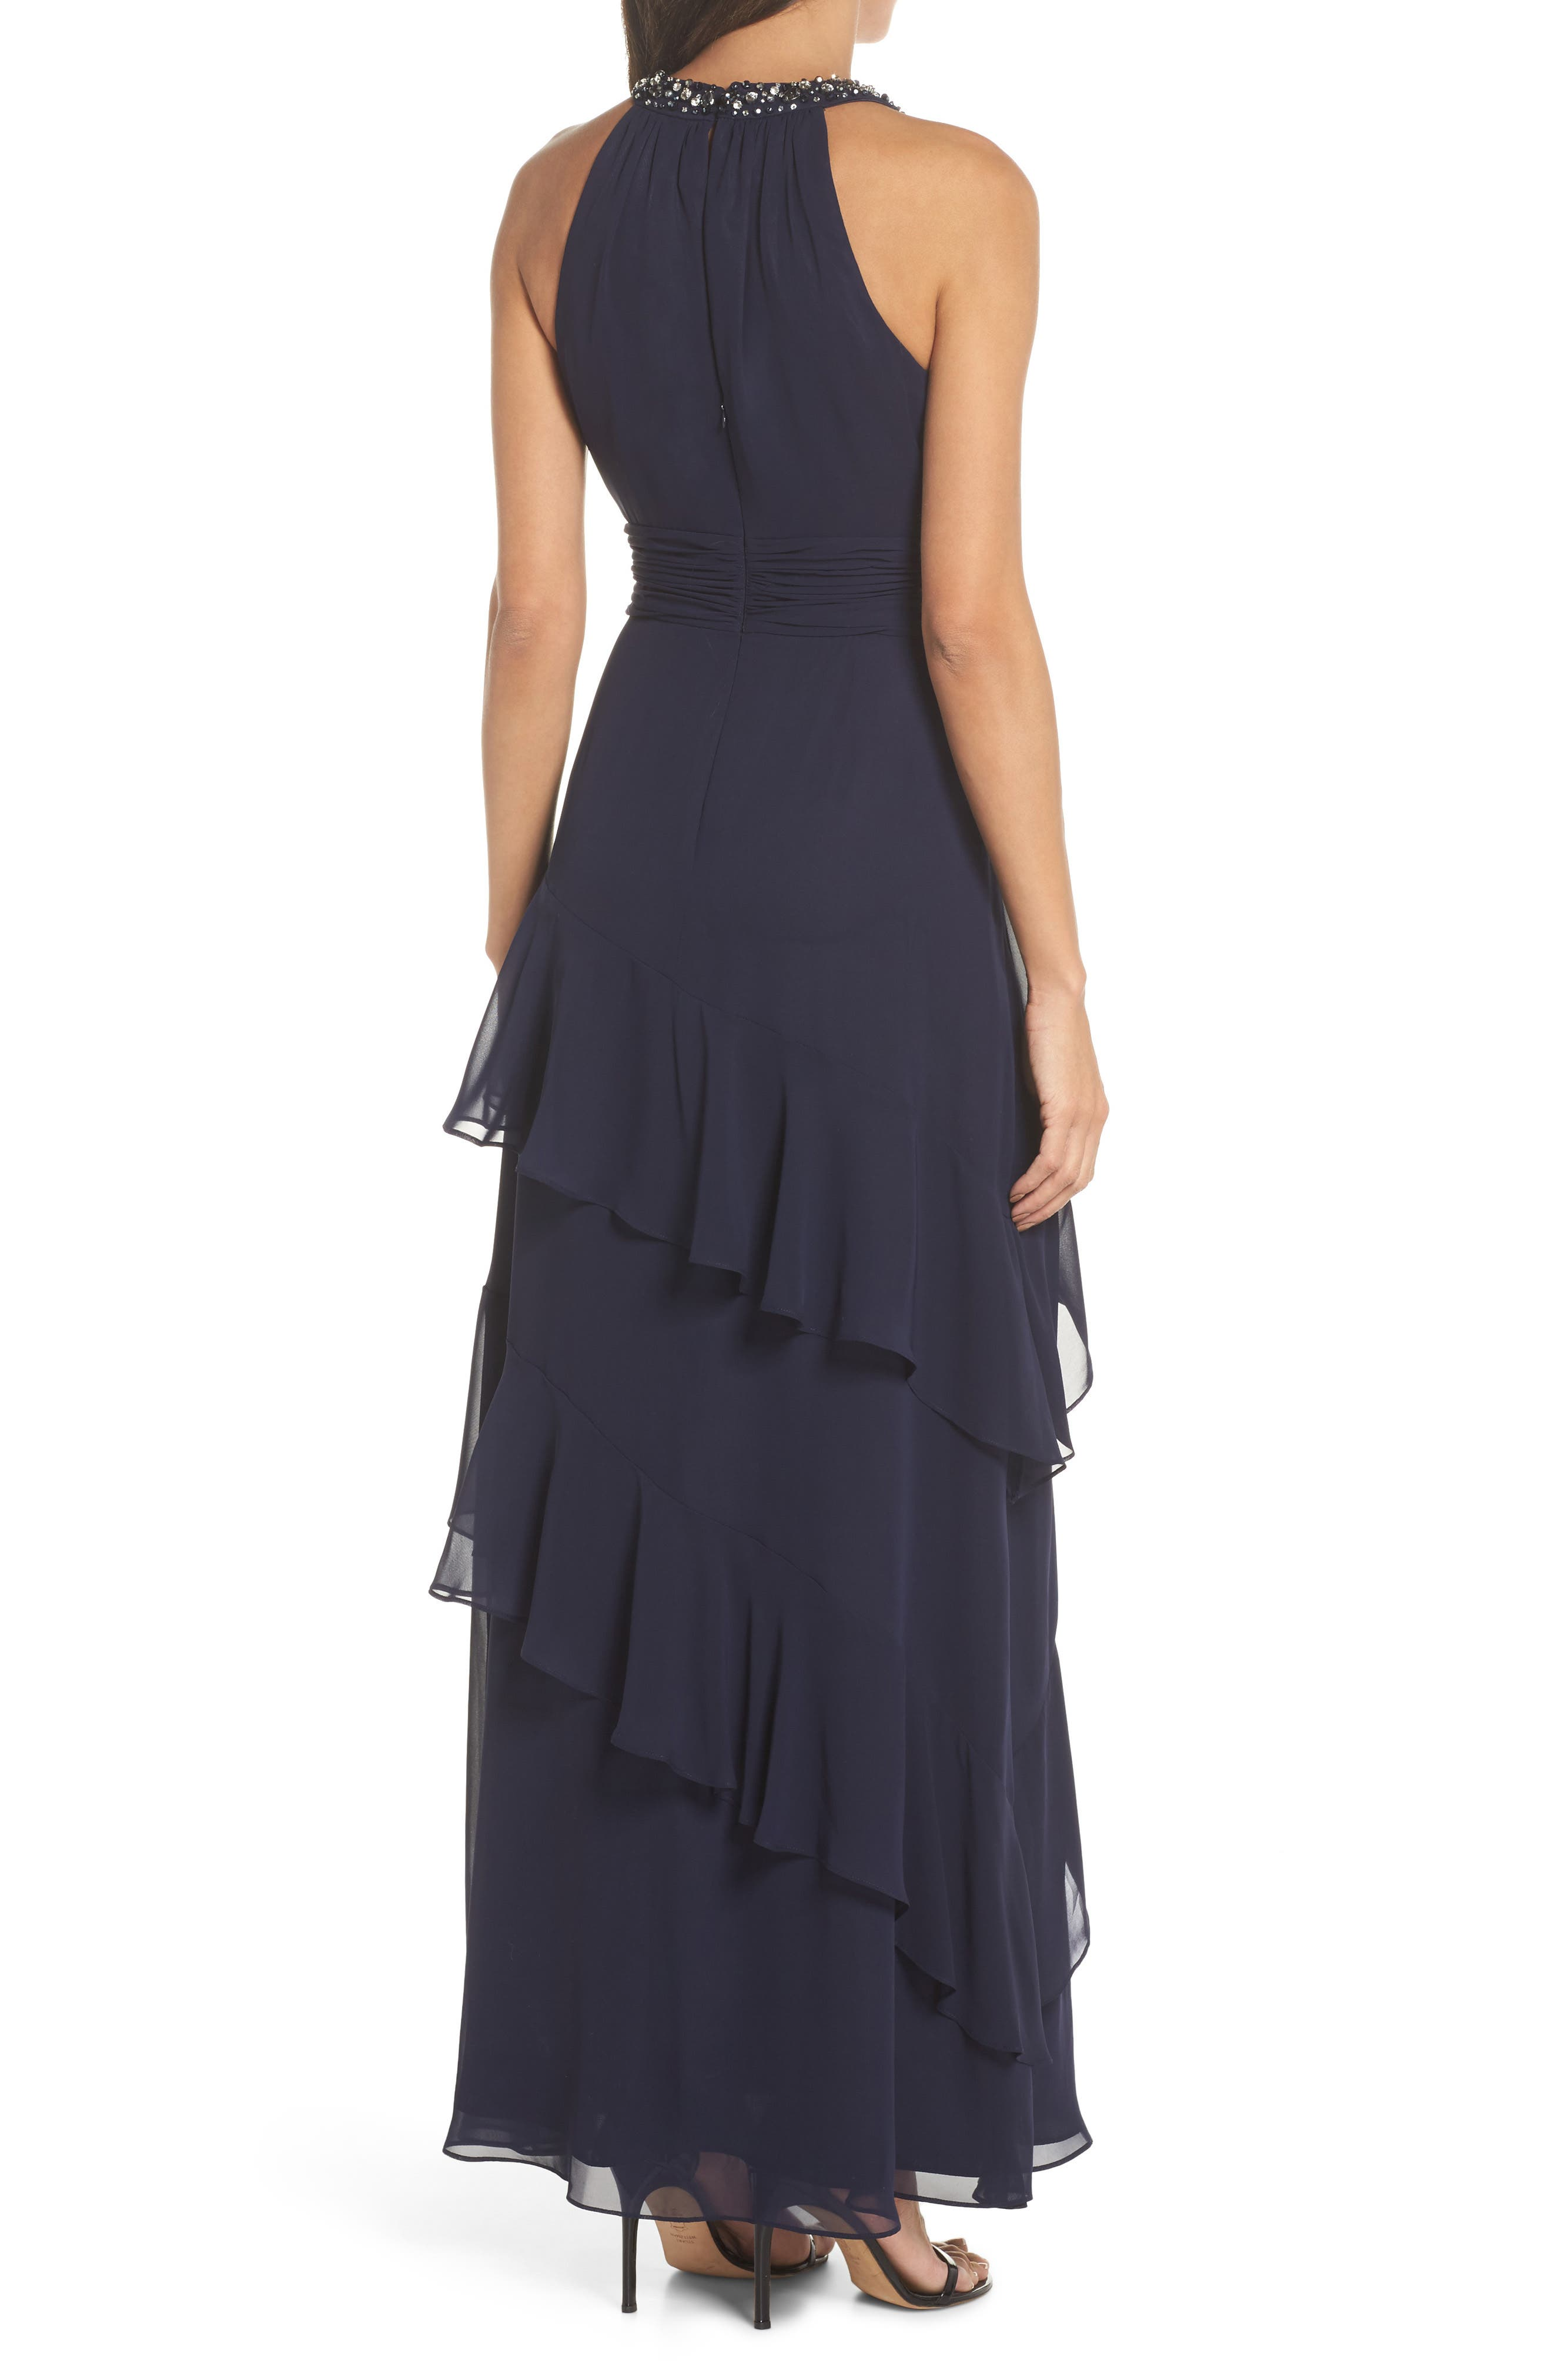 ELIZA J, Beaded Halter Tiered Chiffon Gown, Alternate thumbnail 2, color, NAVY